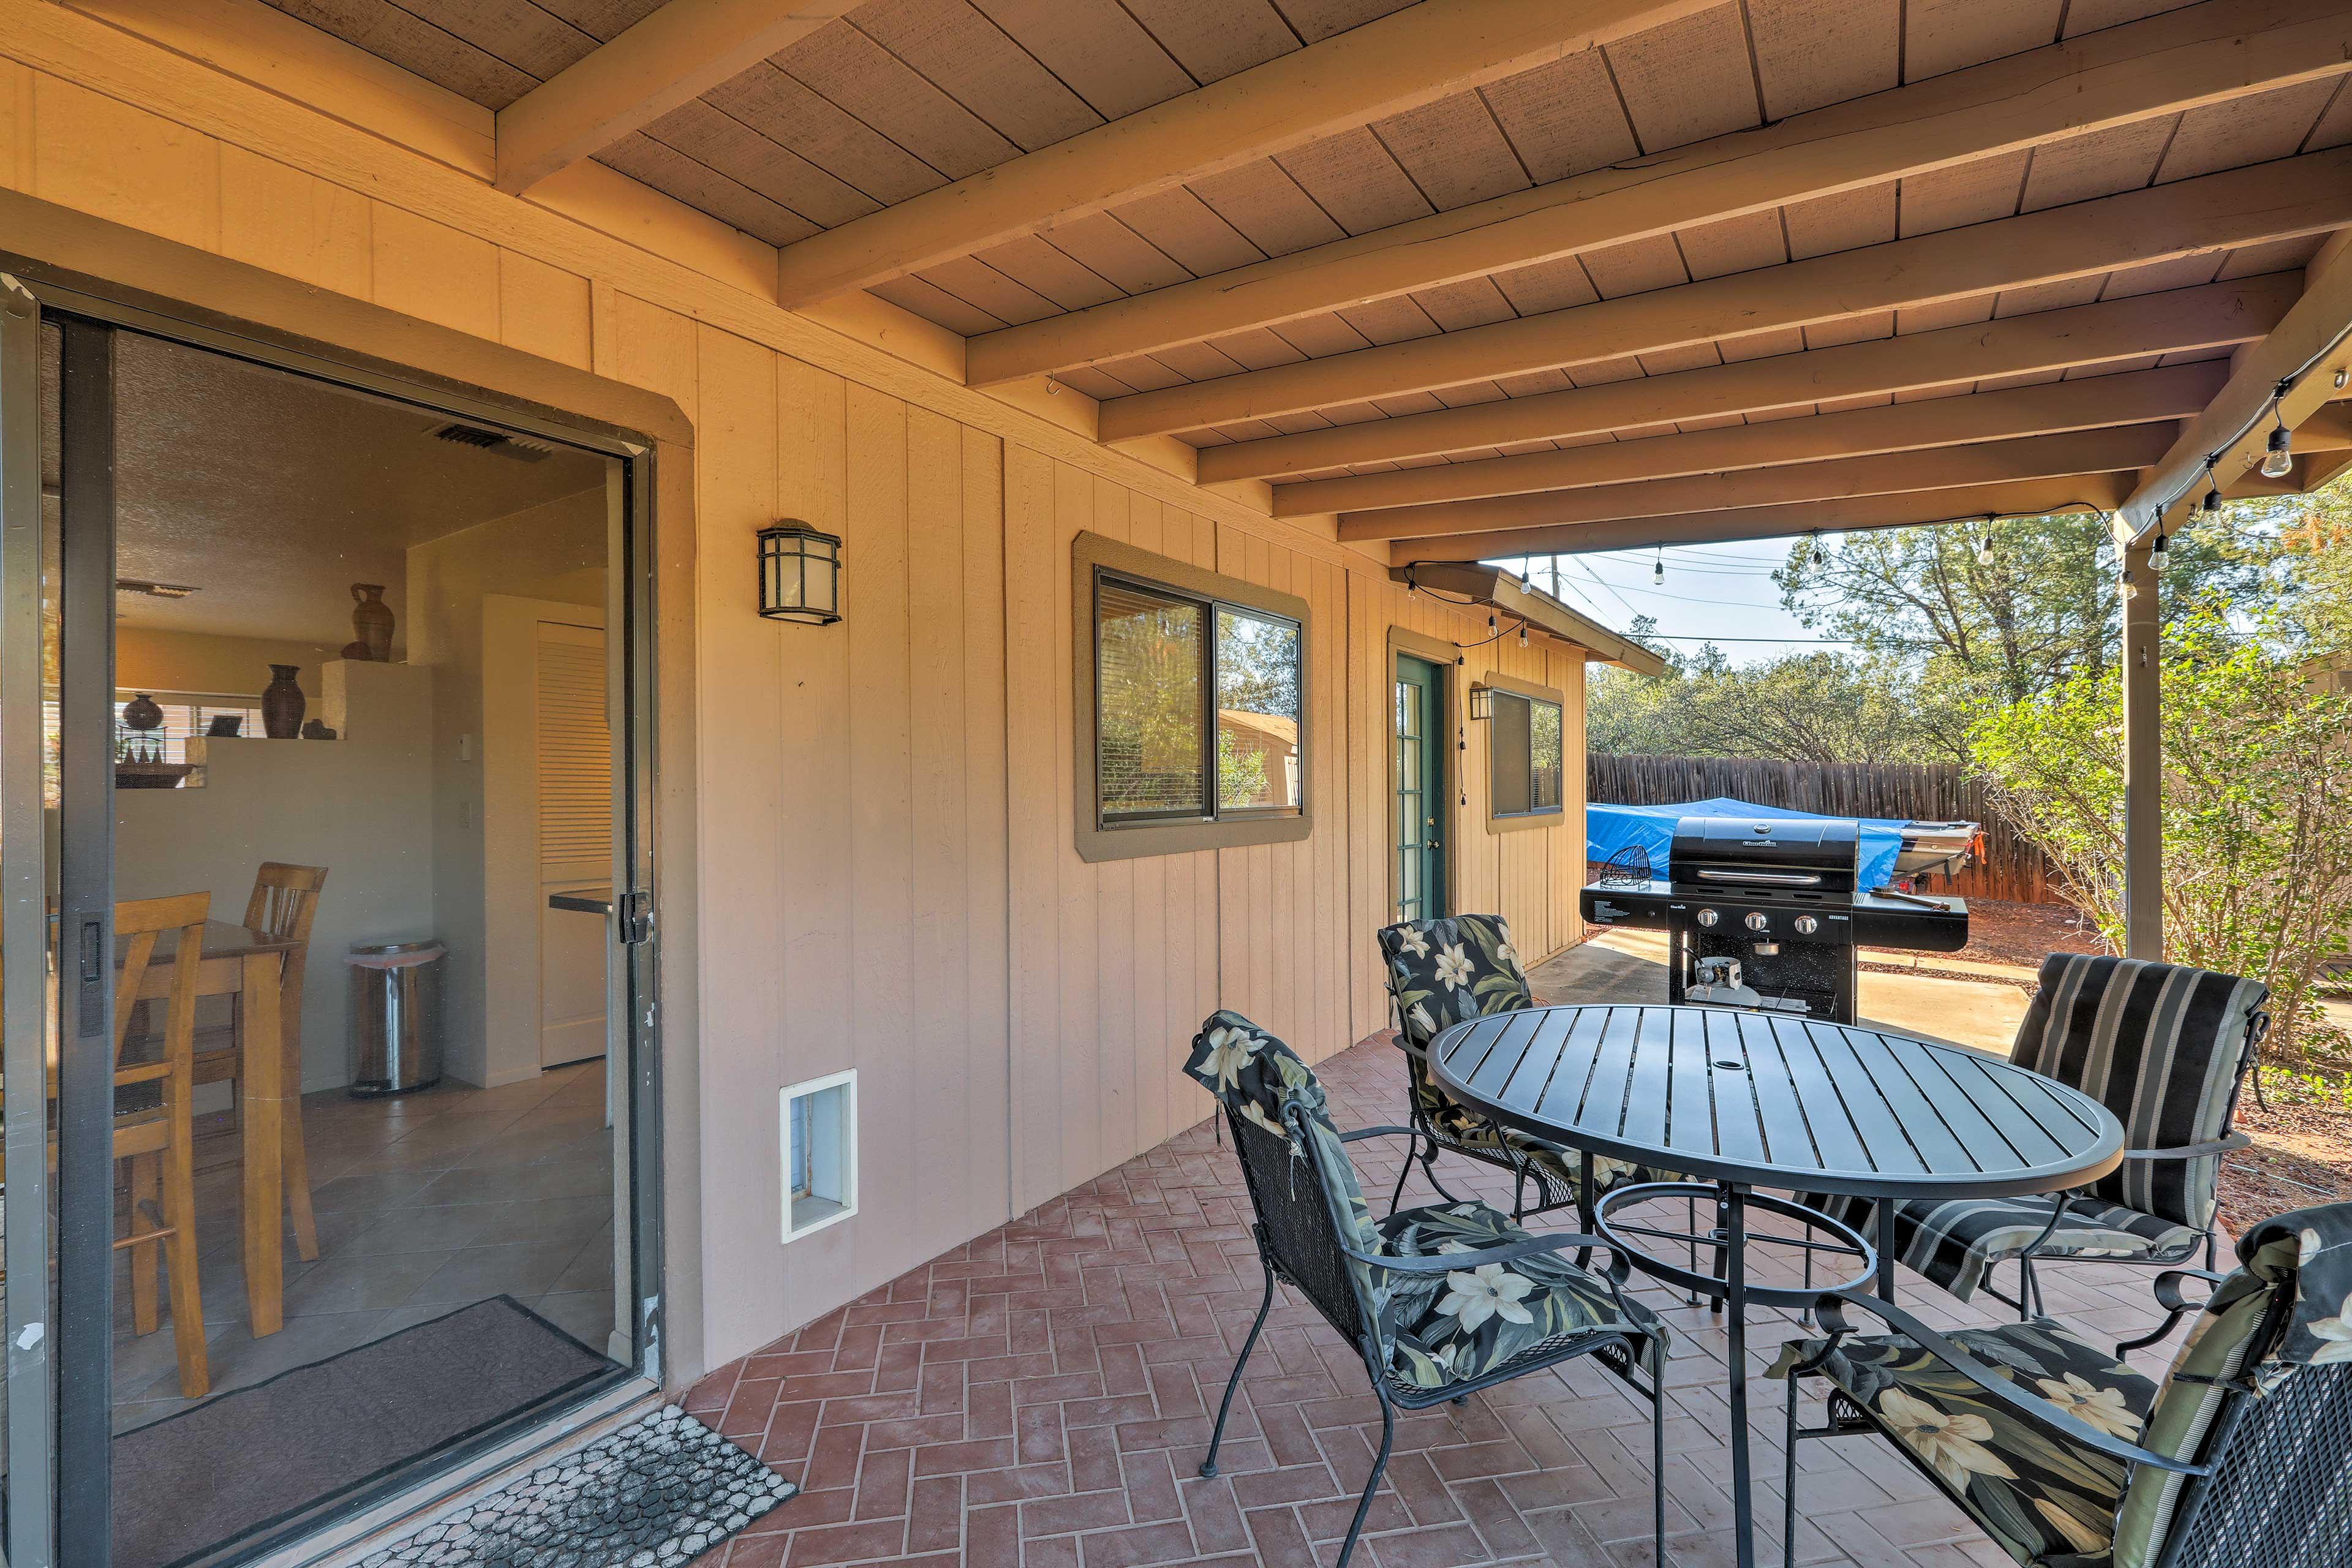 Relax on the private patio during your stay at this vacation rental house!